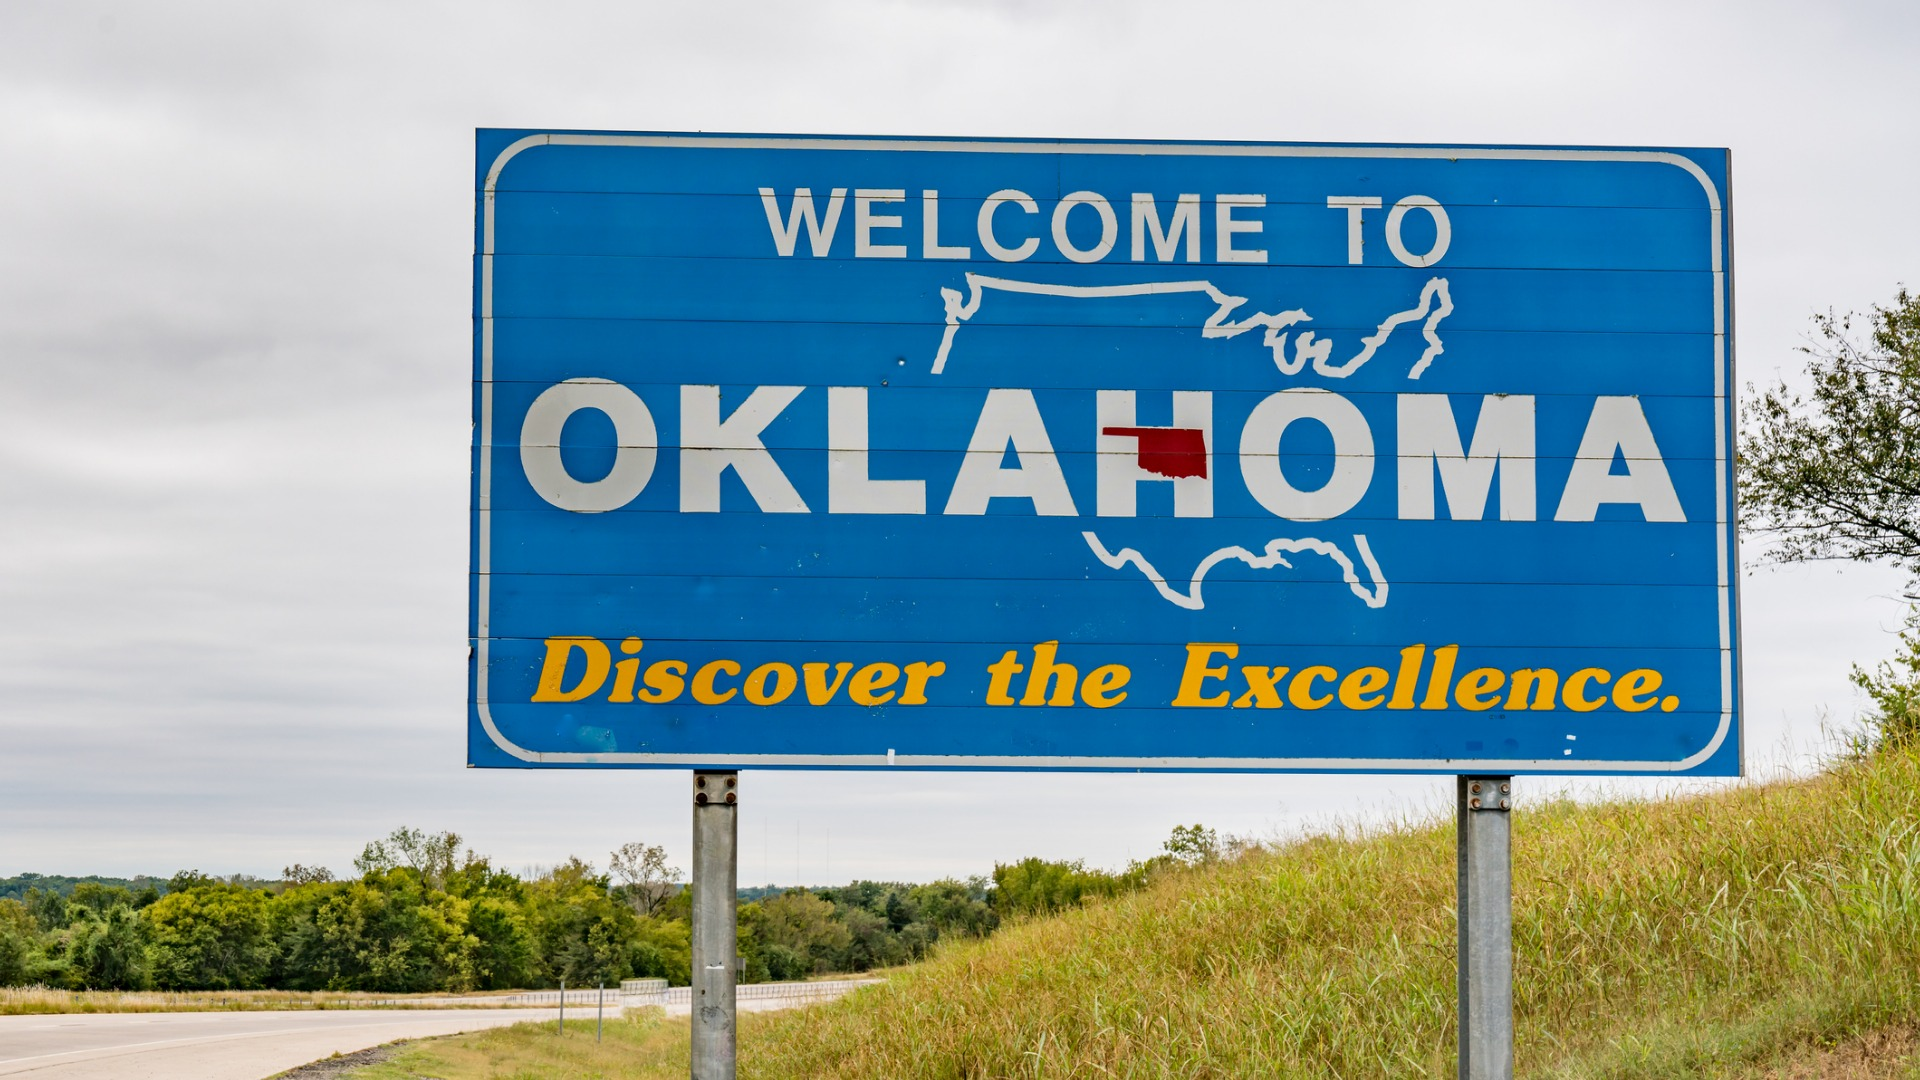 oklahoma approves 12,000 medical marijuana licenses